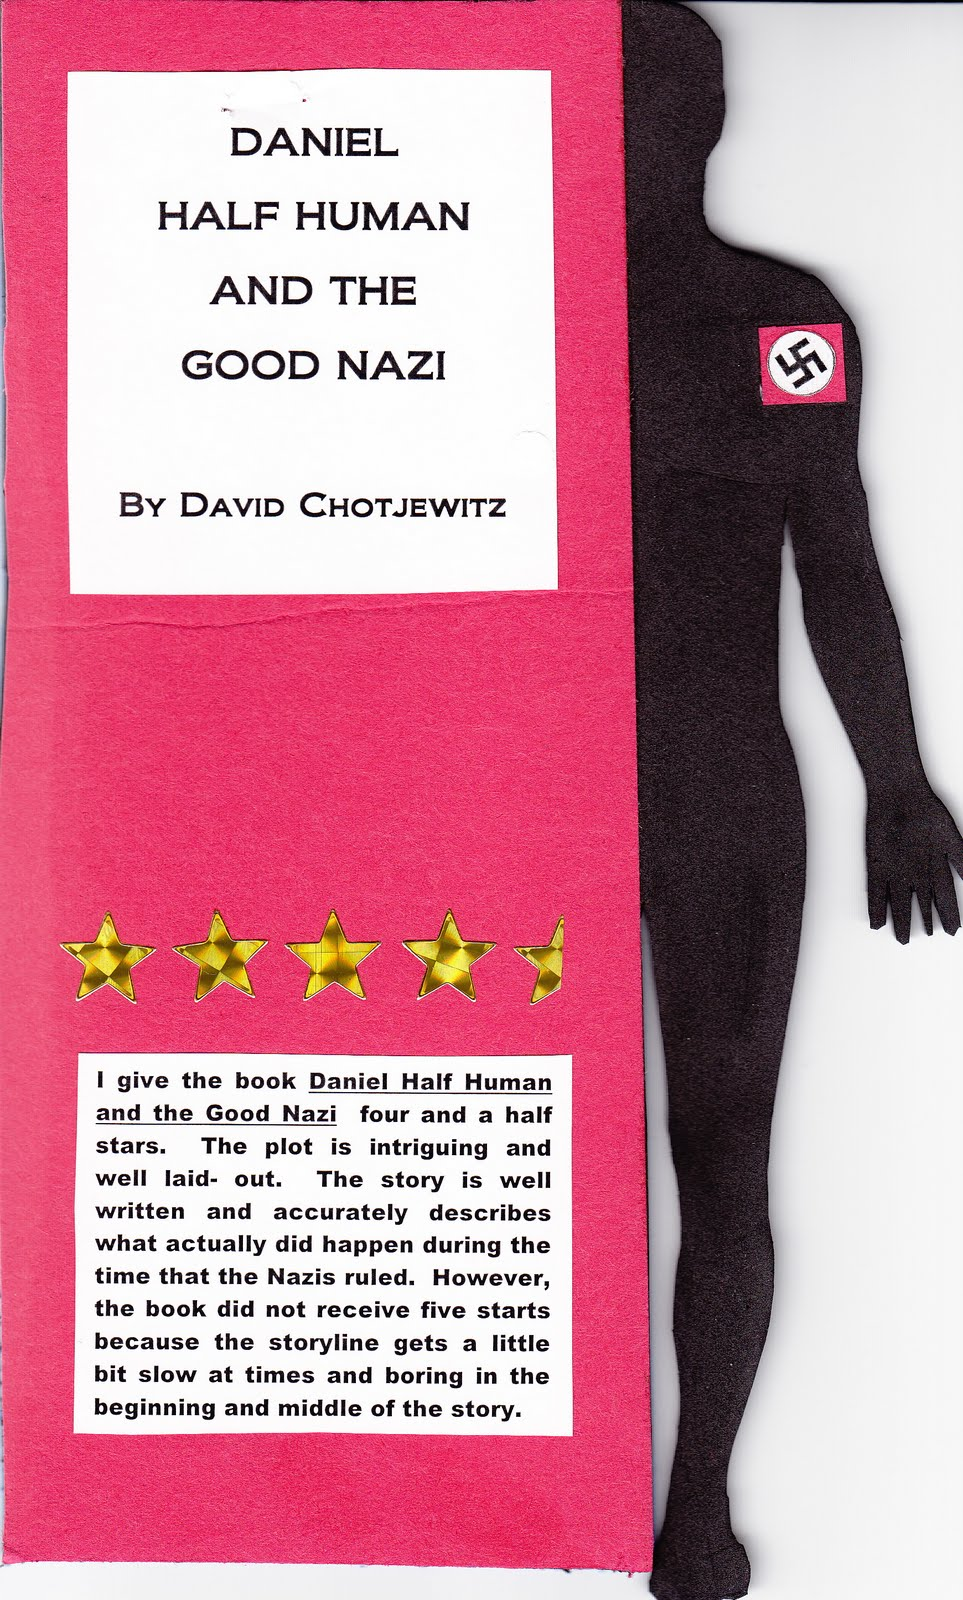 daniel half human and the good nazi